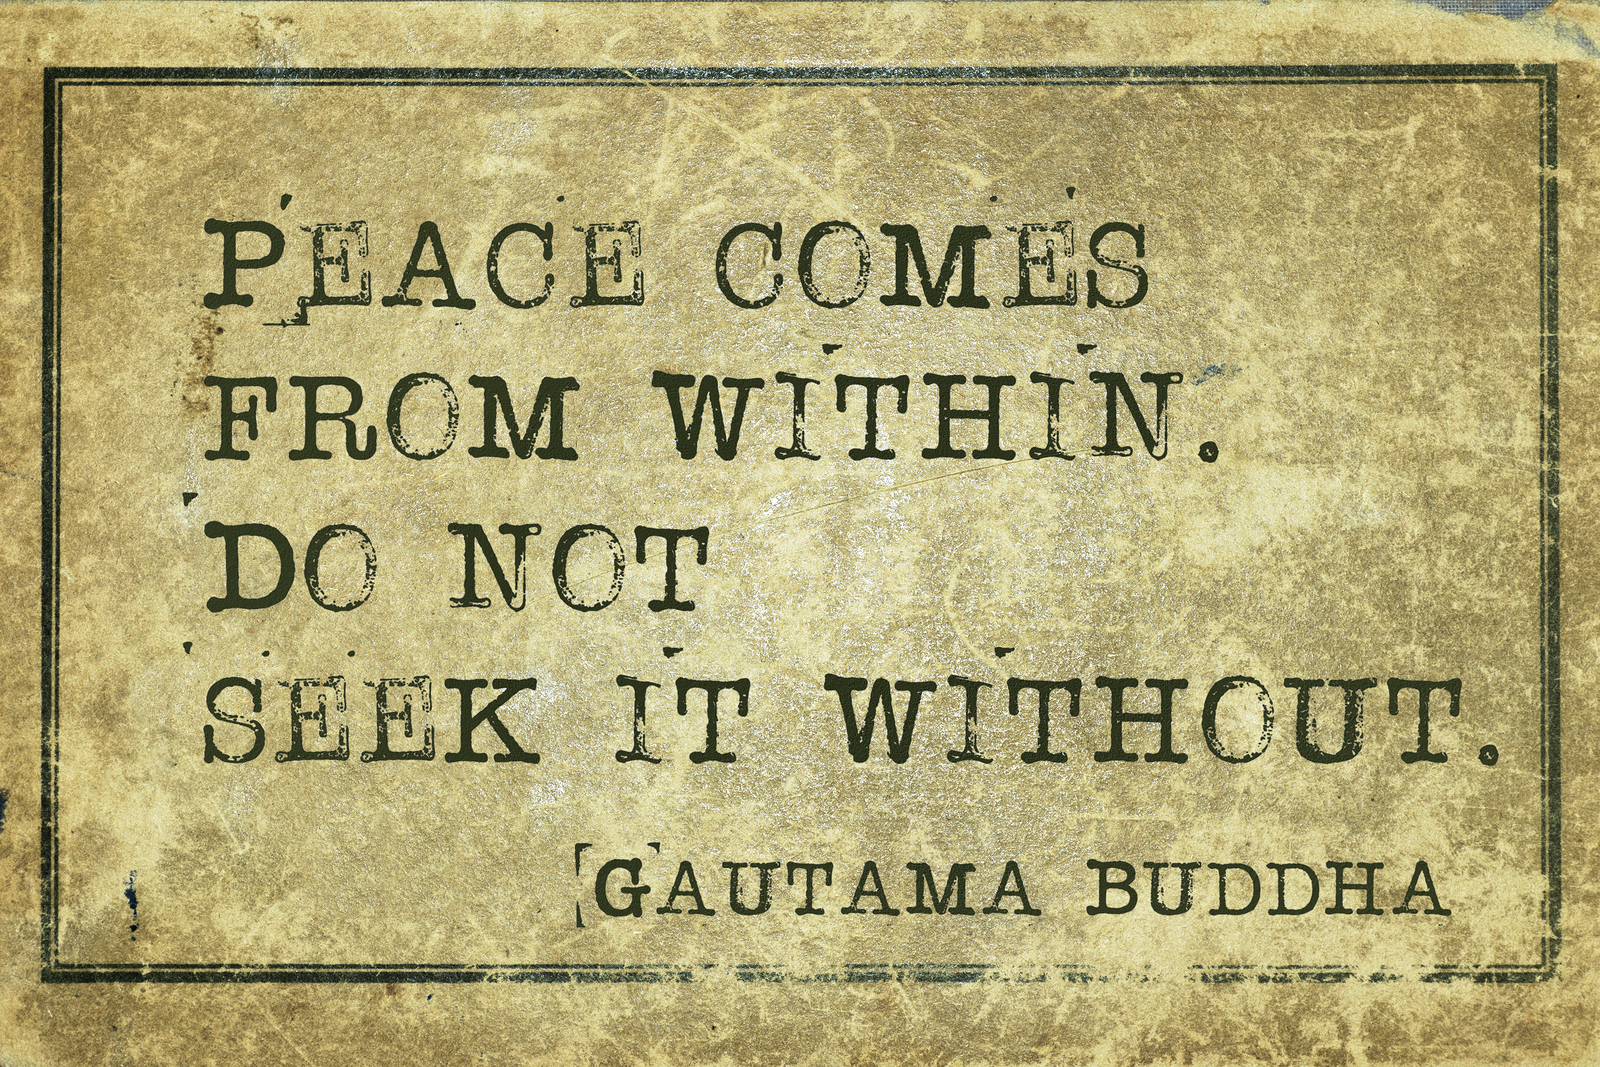 Peace come from within - famous Buddha quote printed on grunge vintage cardboard